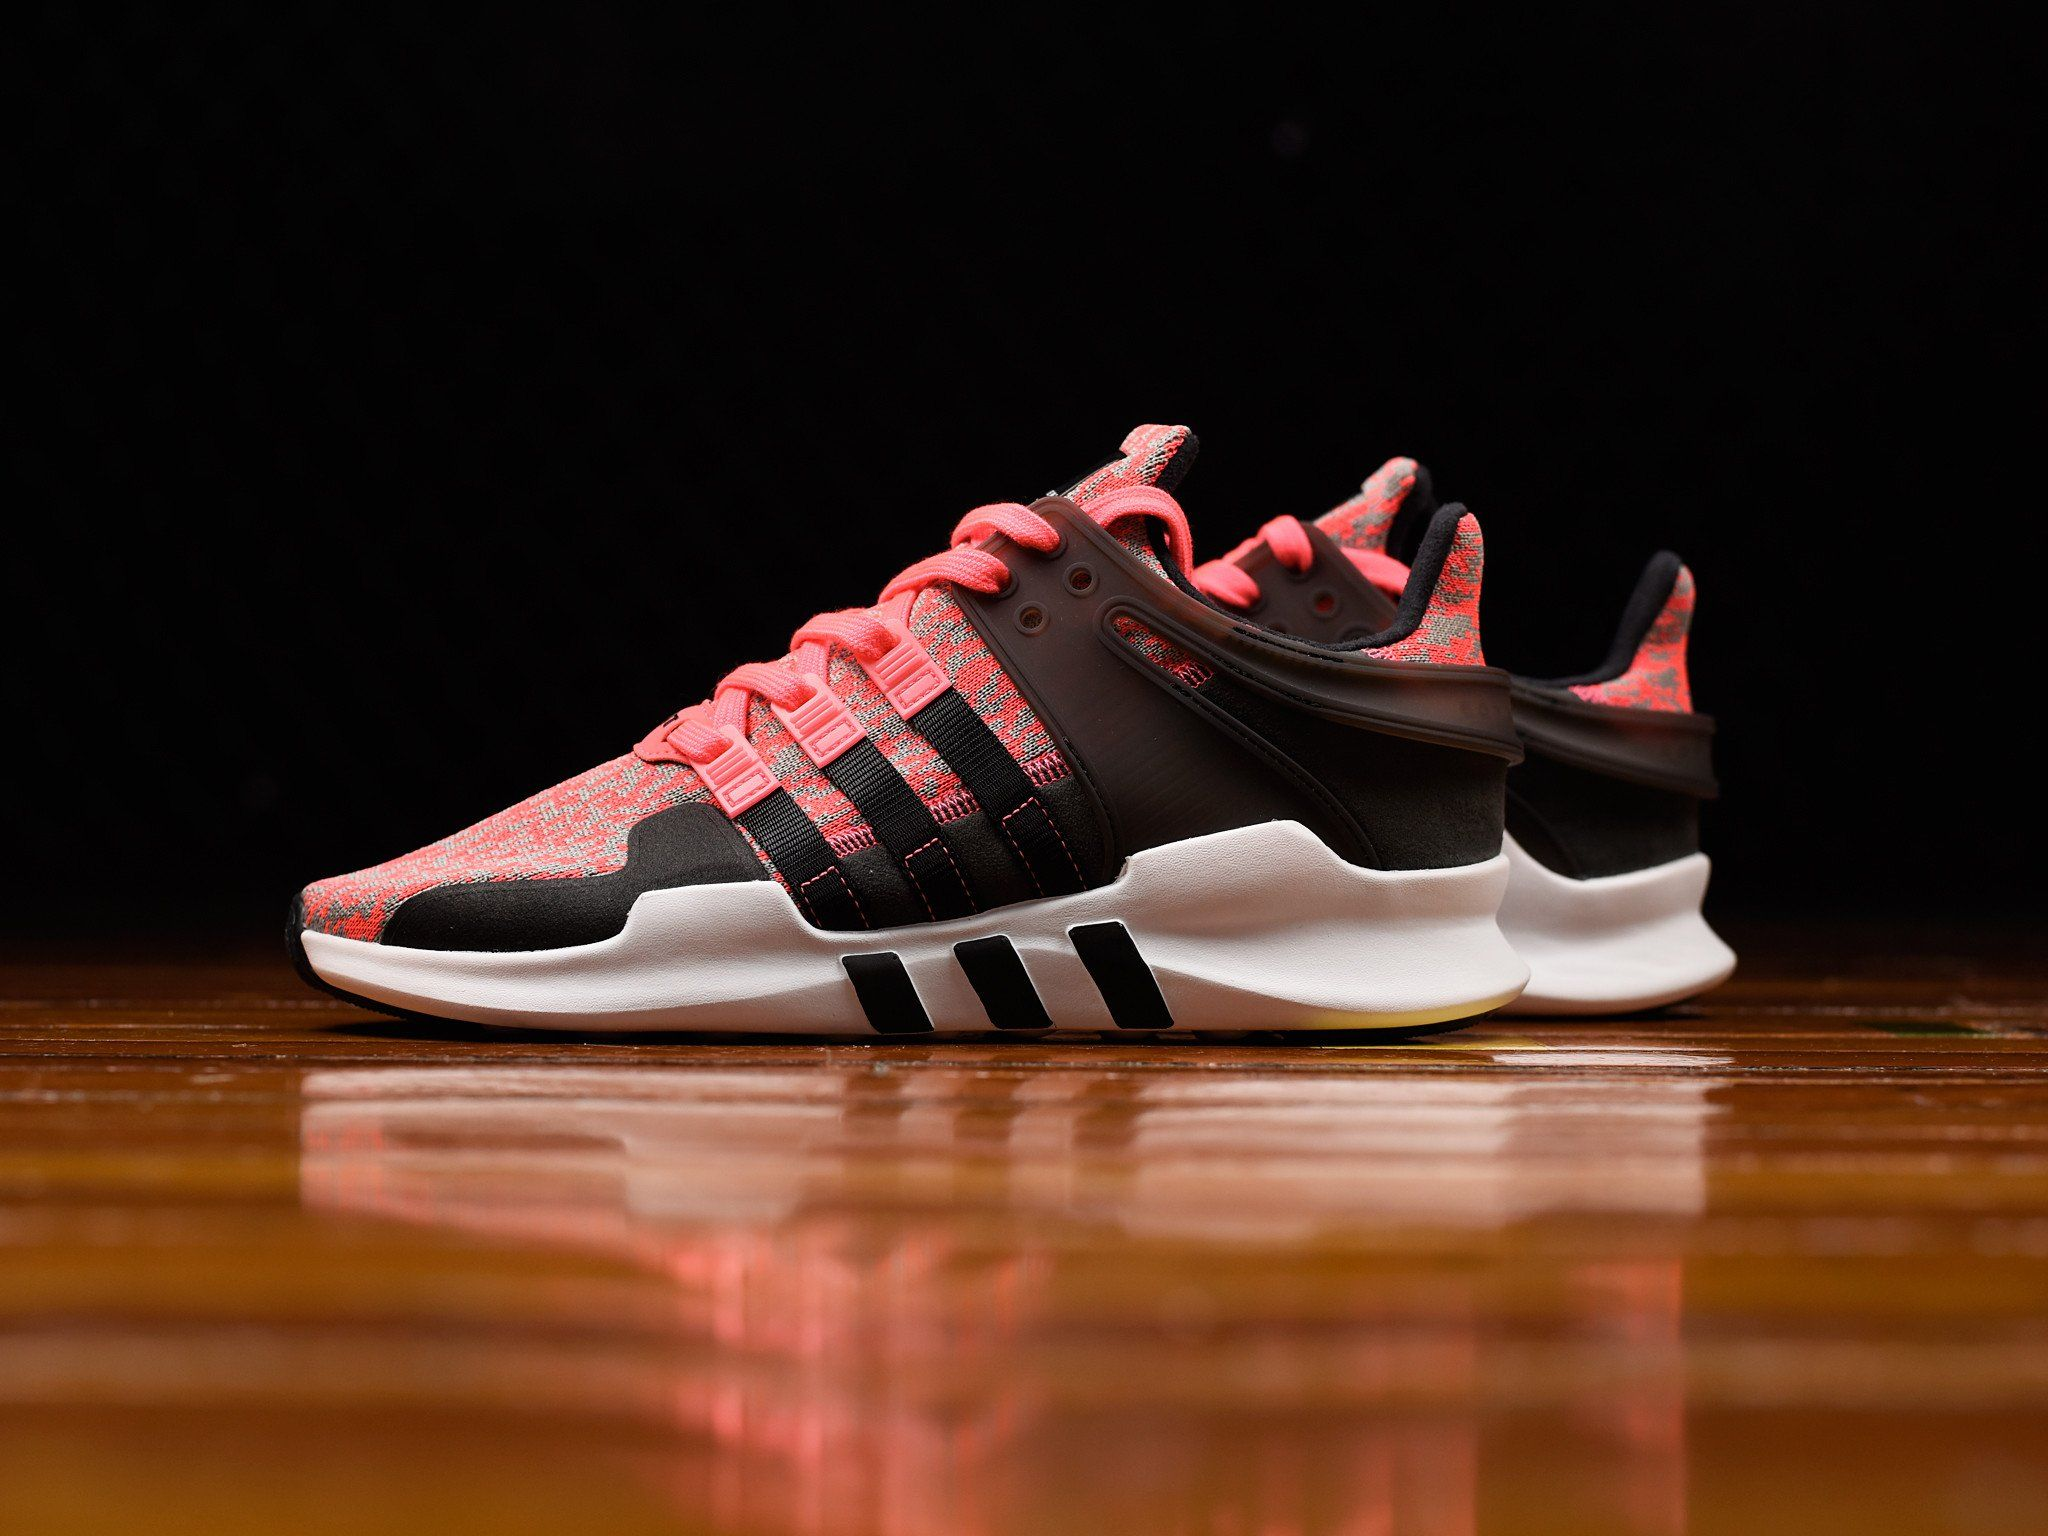 pretty nice 0caf2 2f0d4 Mens Adidas EQT Support ADV Turbo Glitch CG2950